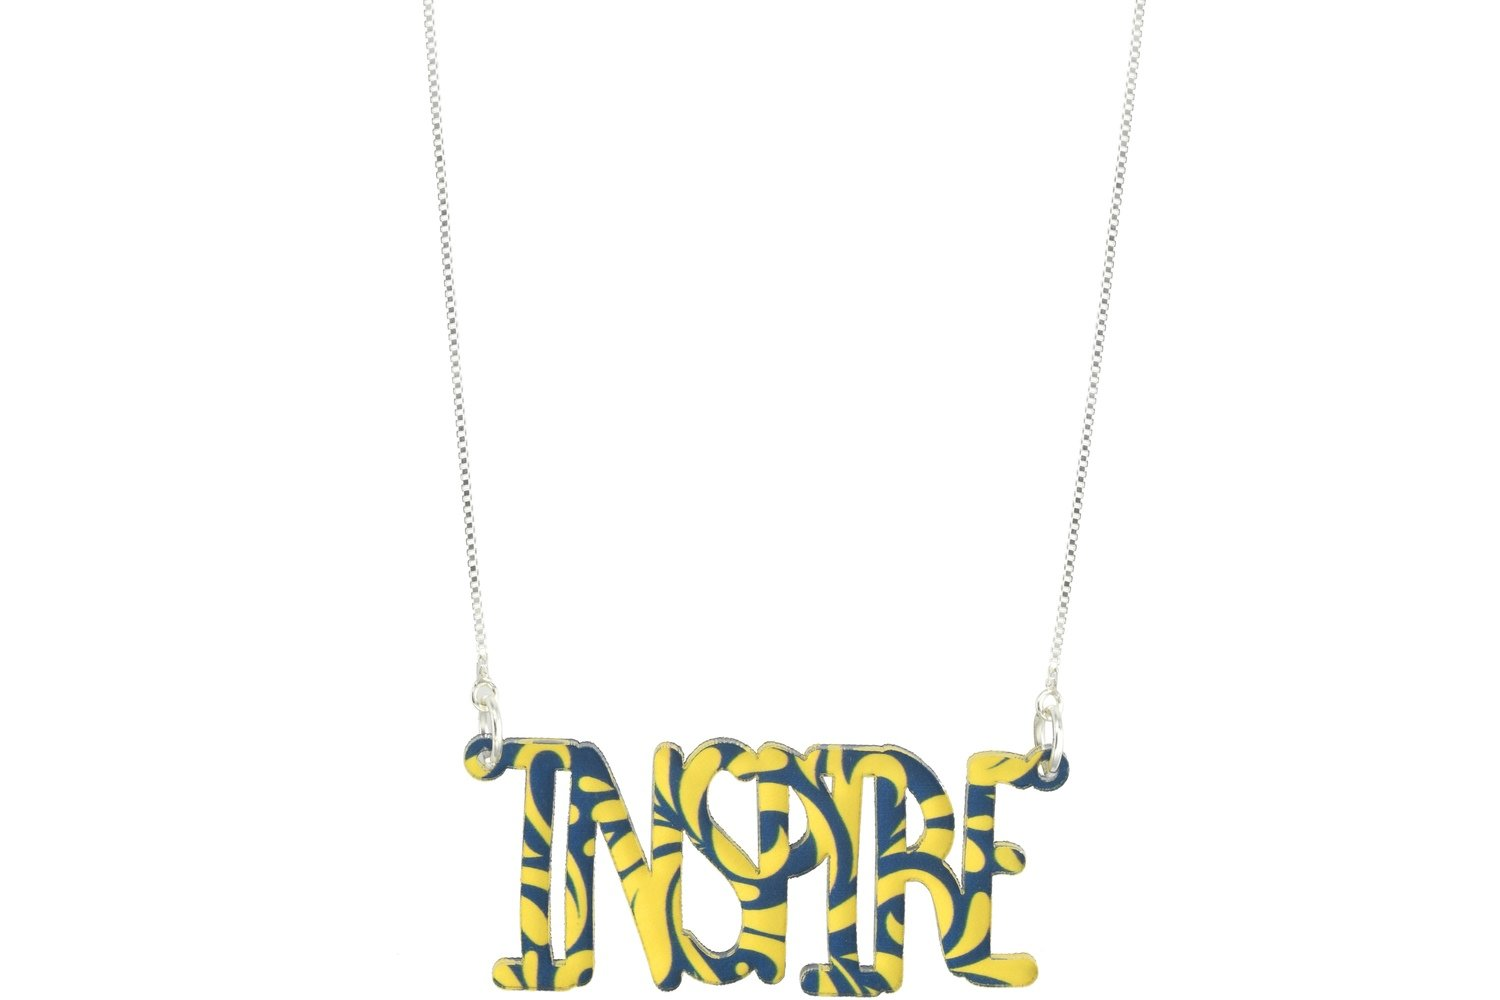 Declaration Style 2 with Duo Necklace